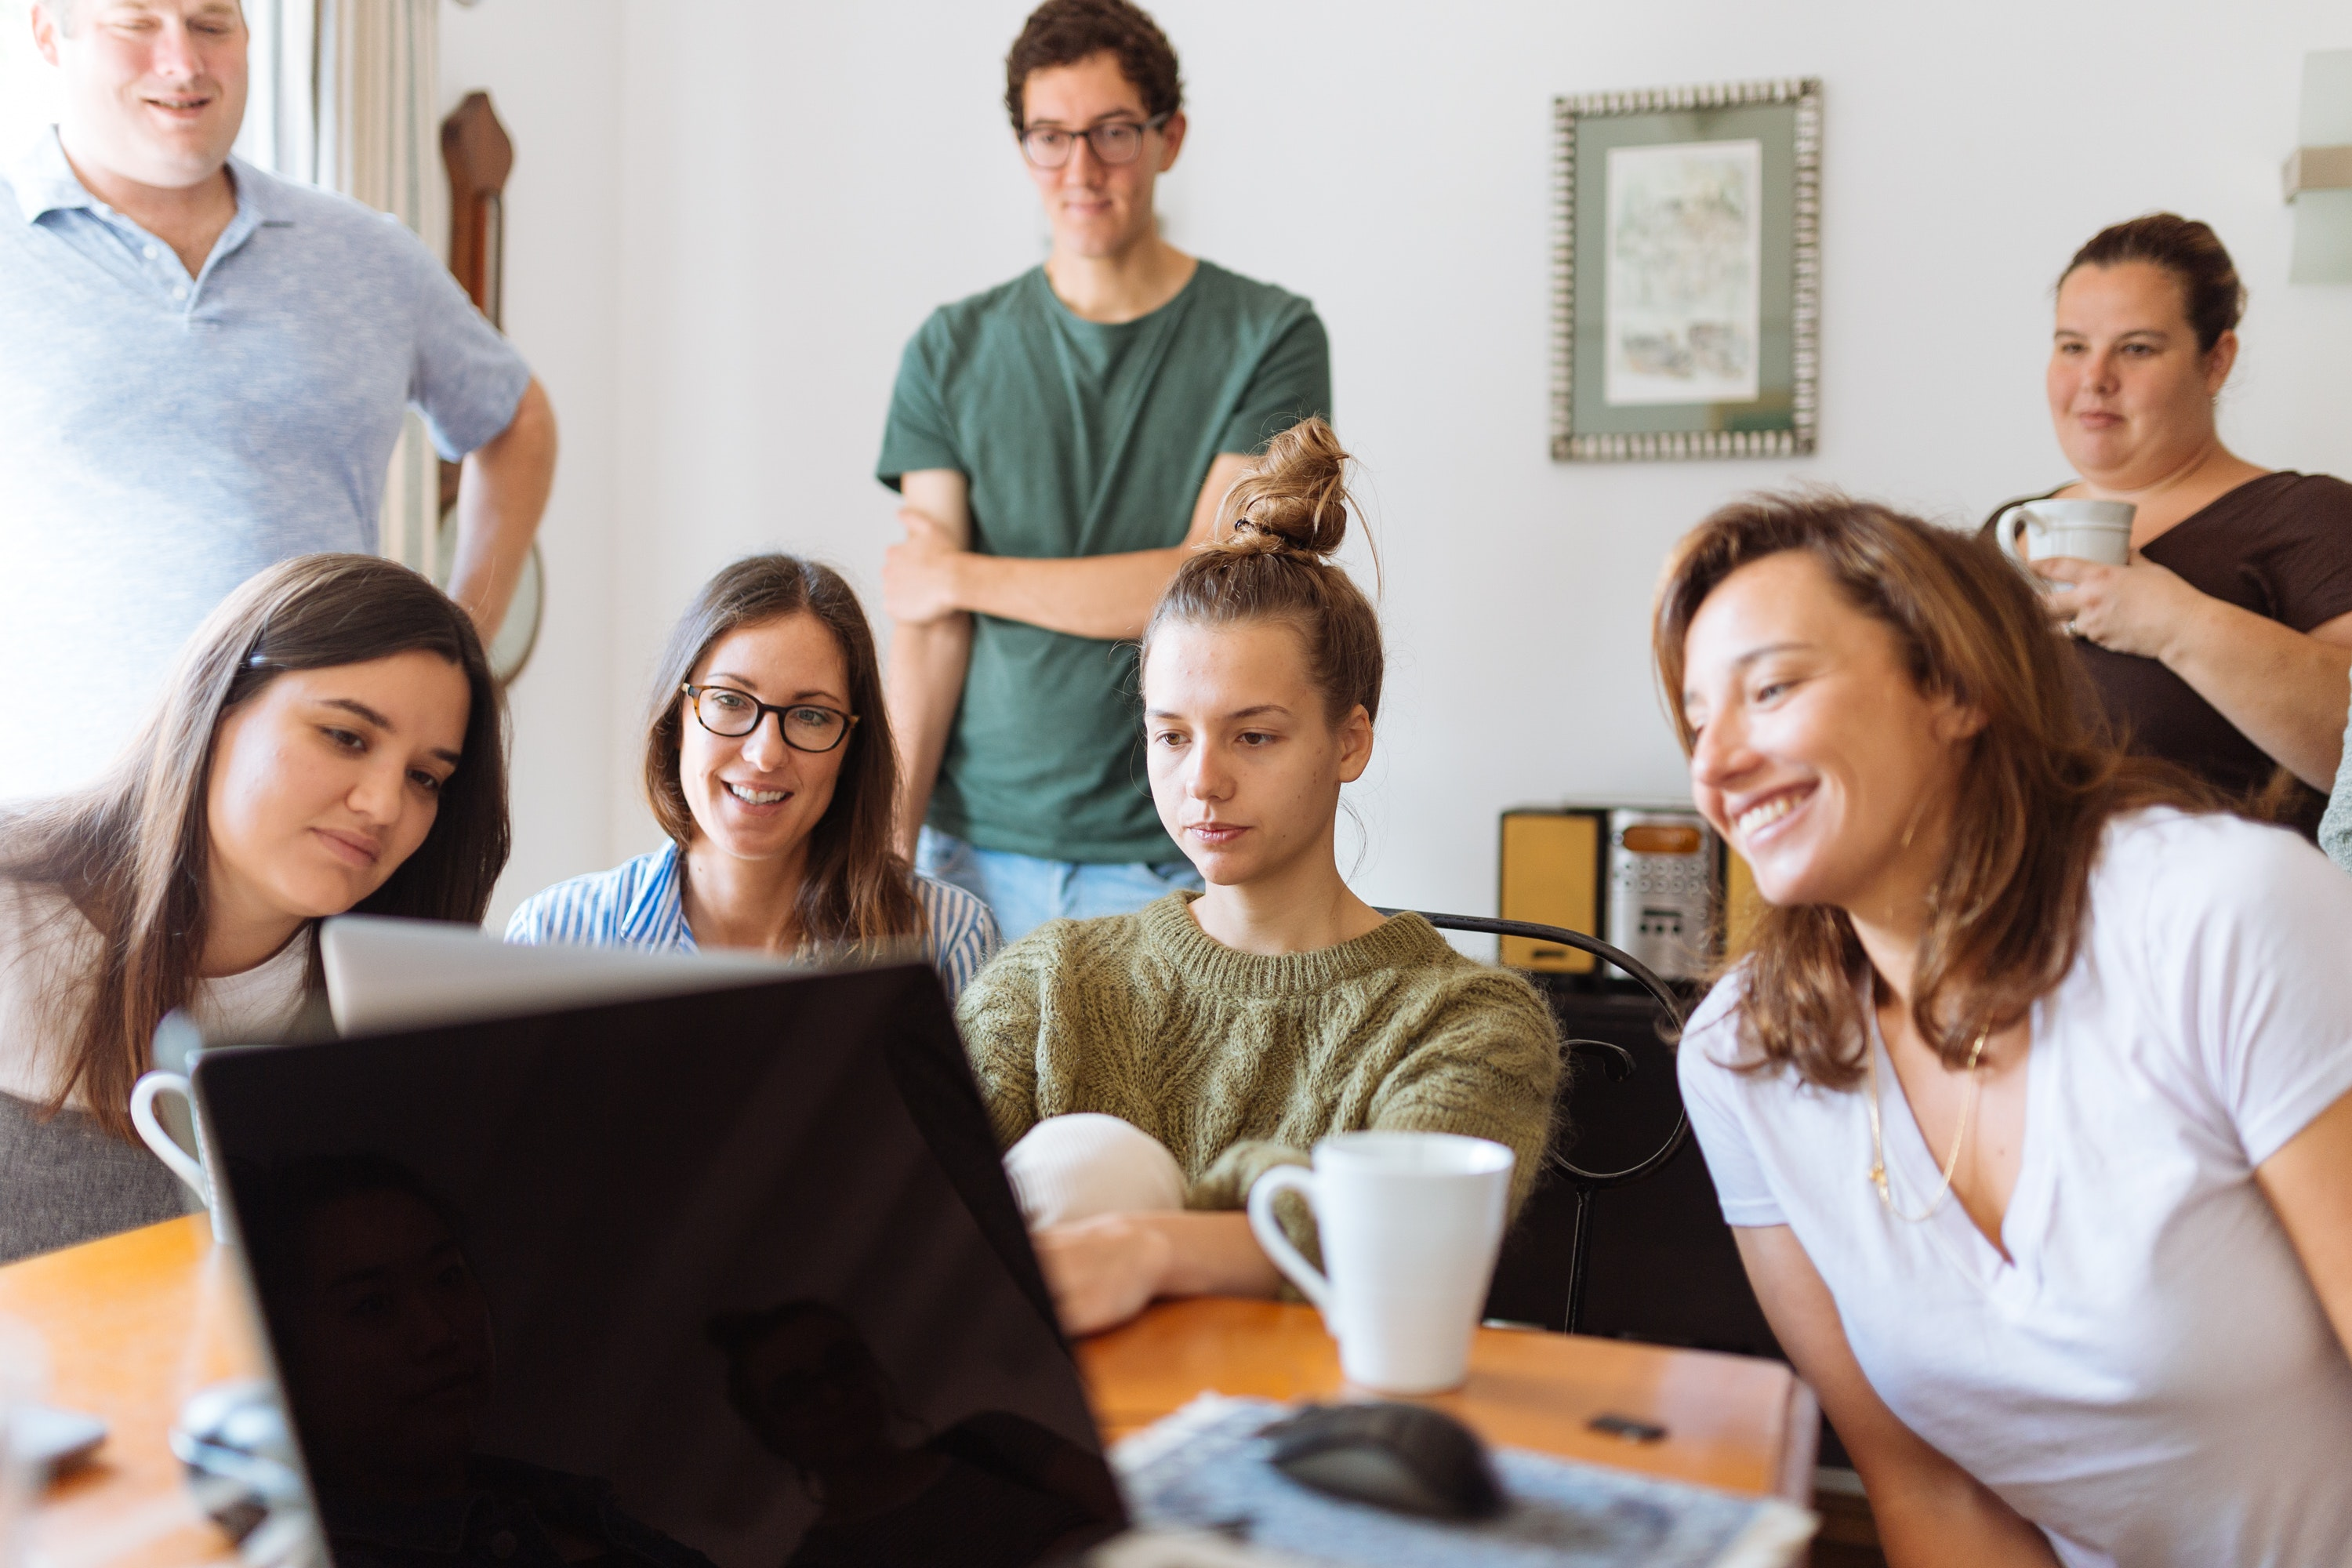 A marketing team of seven people huddled around a table looking at a laptop.